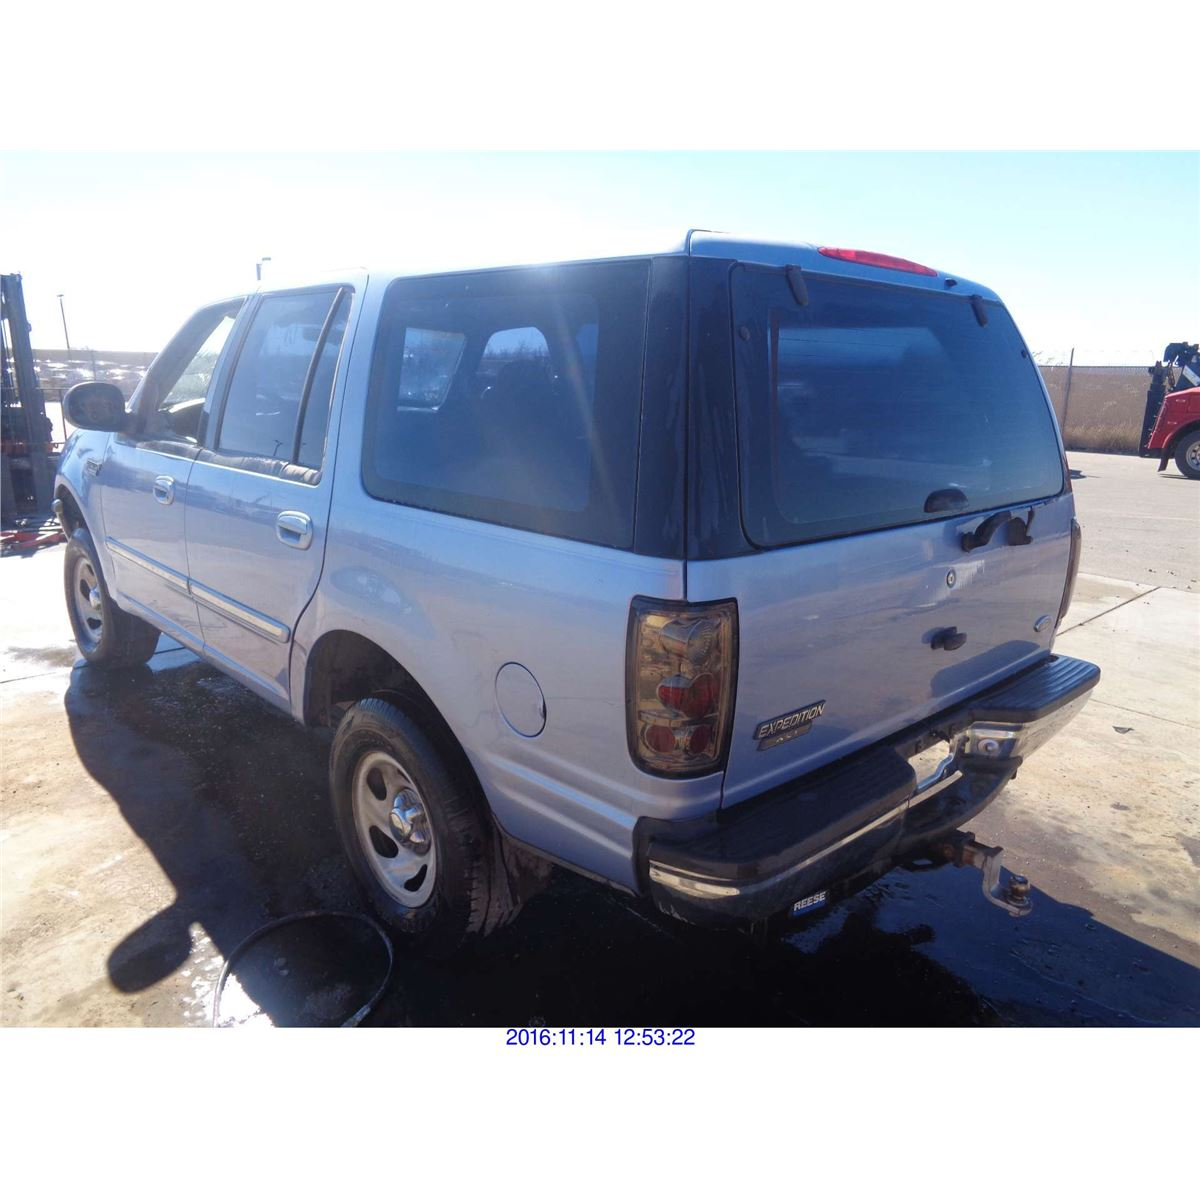 1997 Ford Expedition For Sale